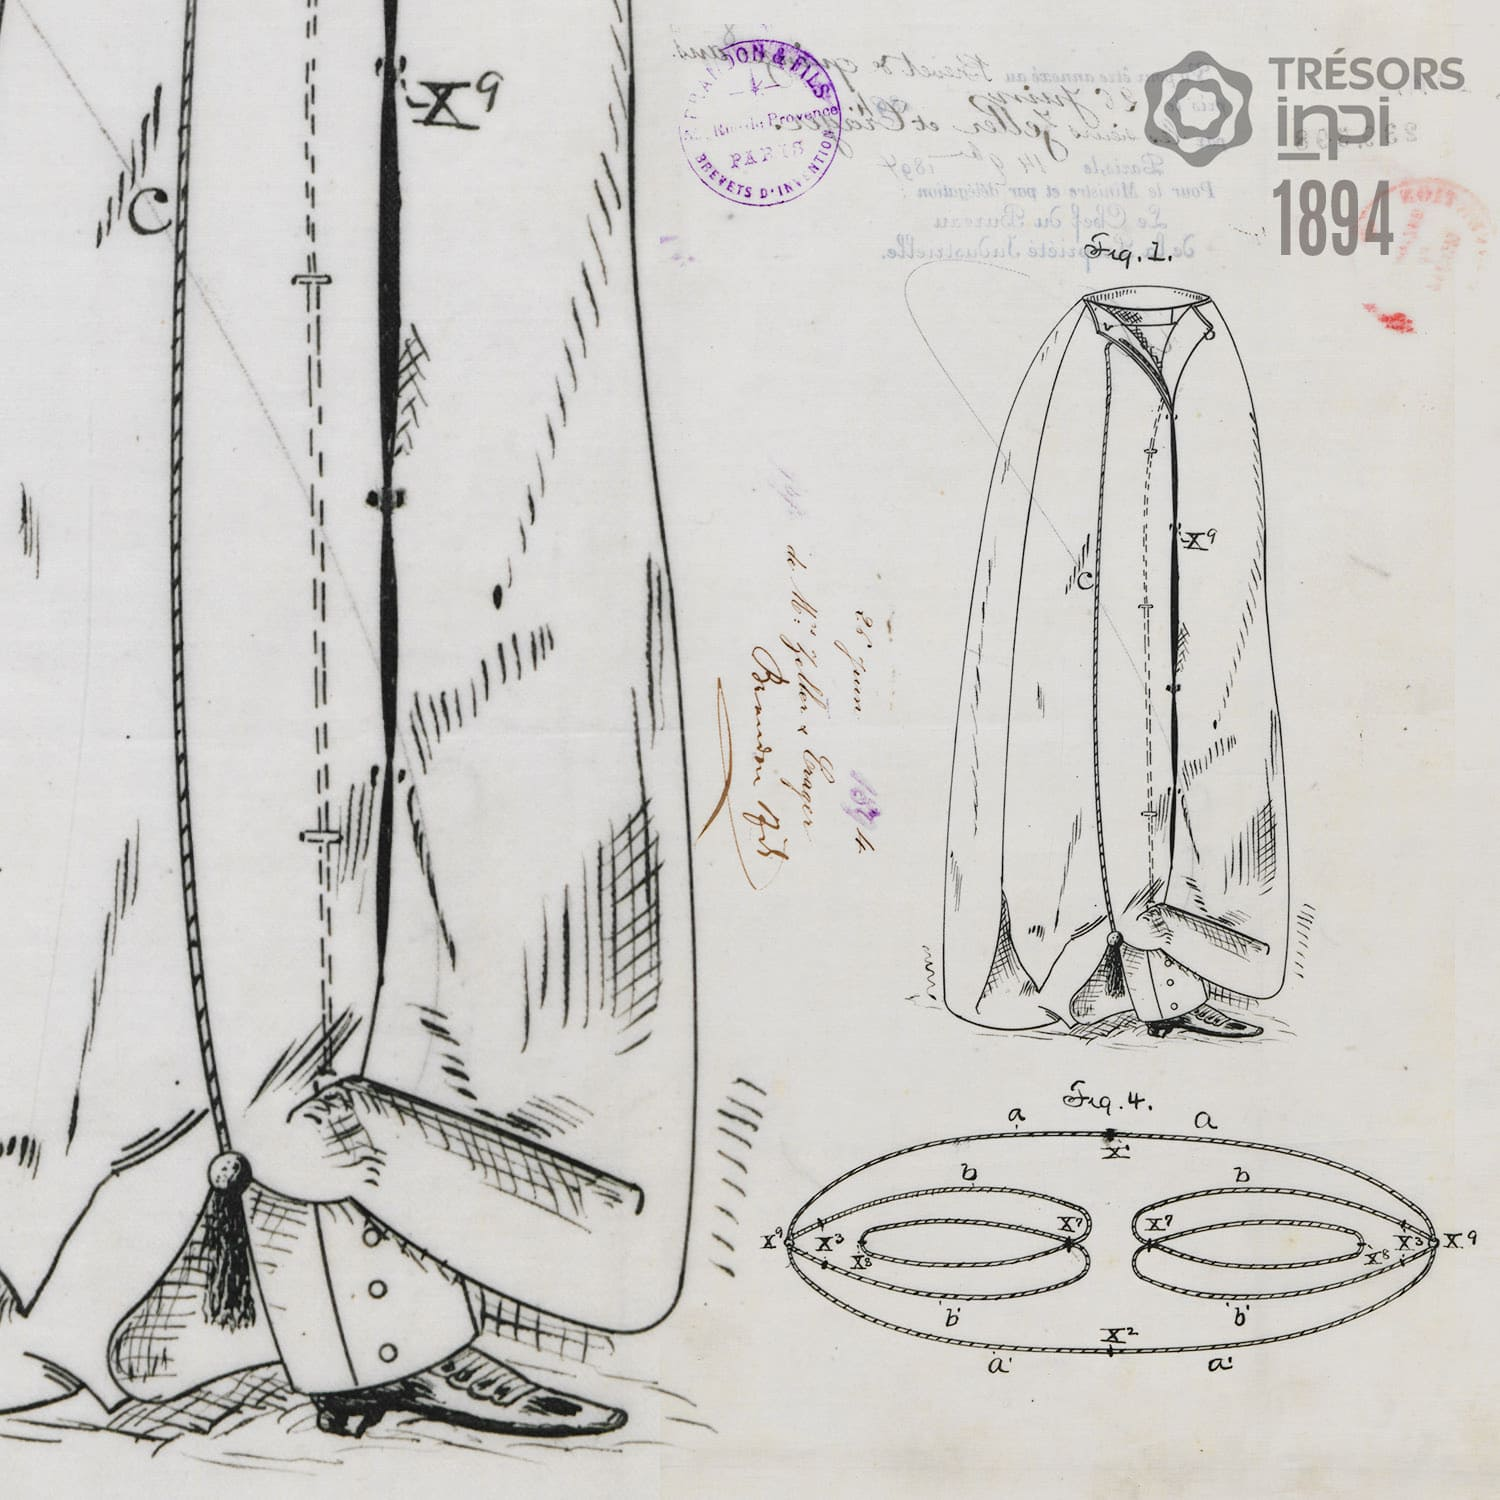 Bernard Zeller, Henry Crager 1894 combined skirt and pants invention - INPI archives